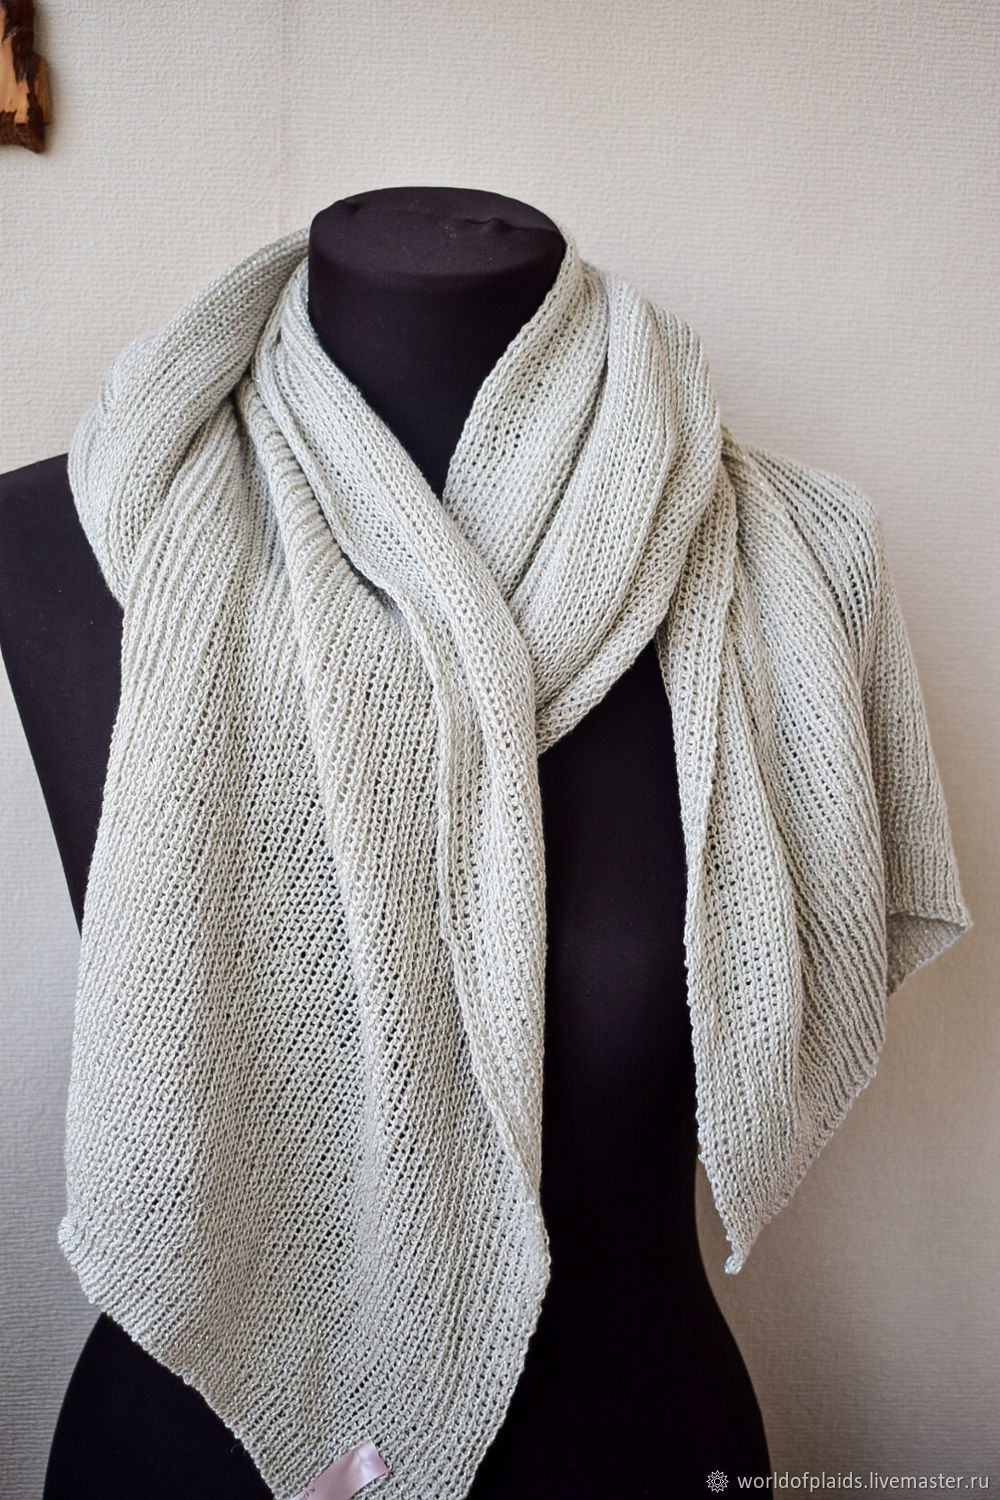 Knitted scarf 'Modest charm' cotton, Scarves, Zhukovsky,  Фото №1